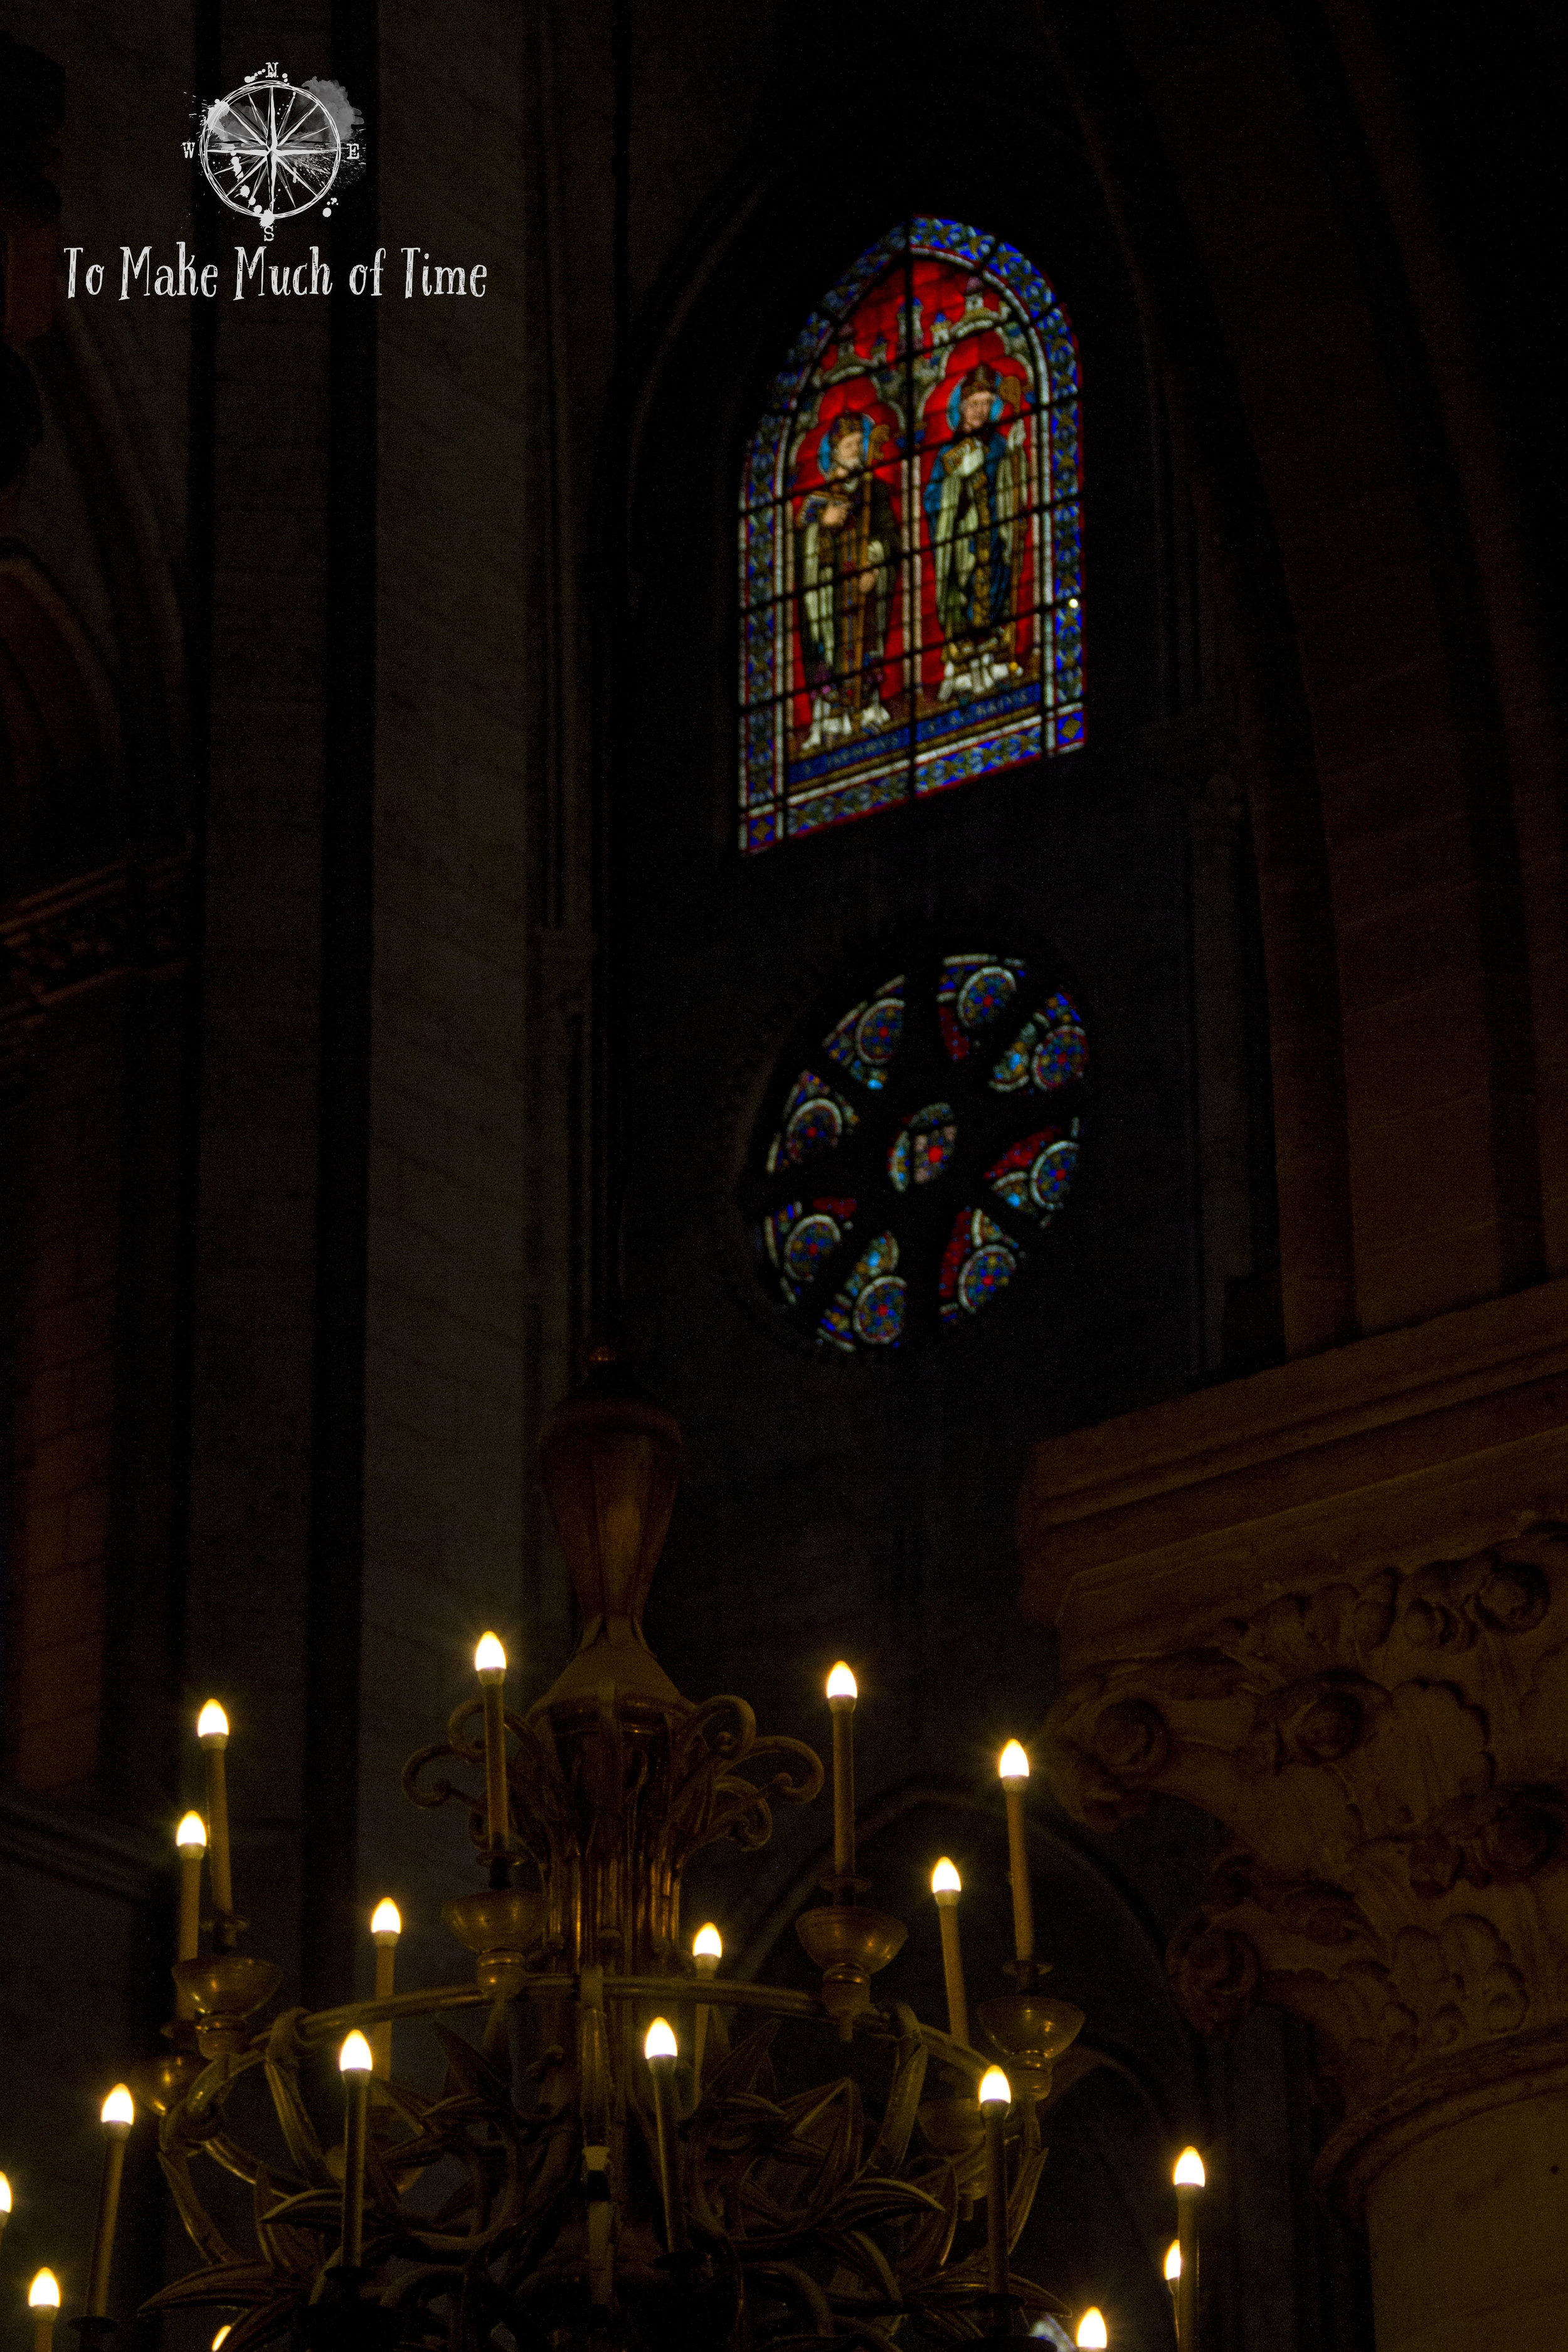 Inside Notre Dame is dark but amazing colors shine through the stained glass windows.